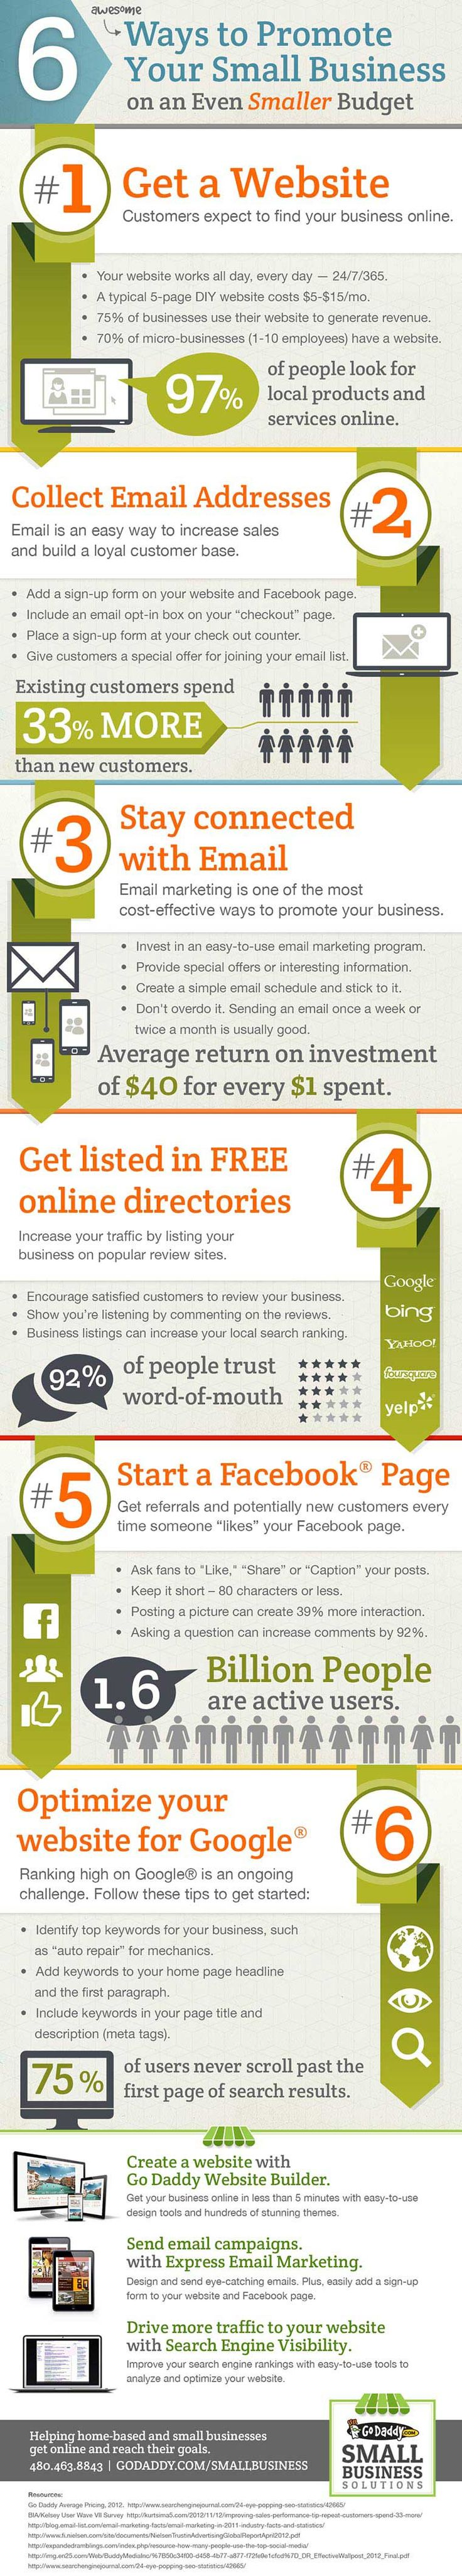 #SMB Small Business Marketing